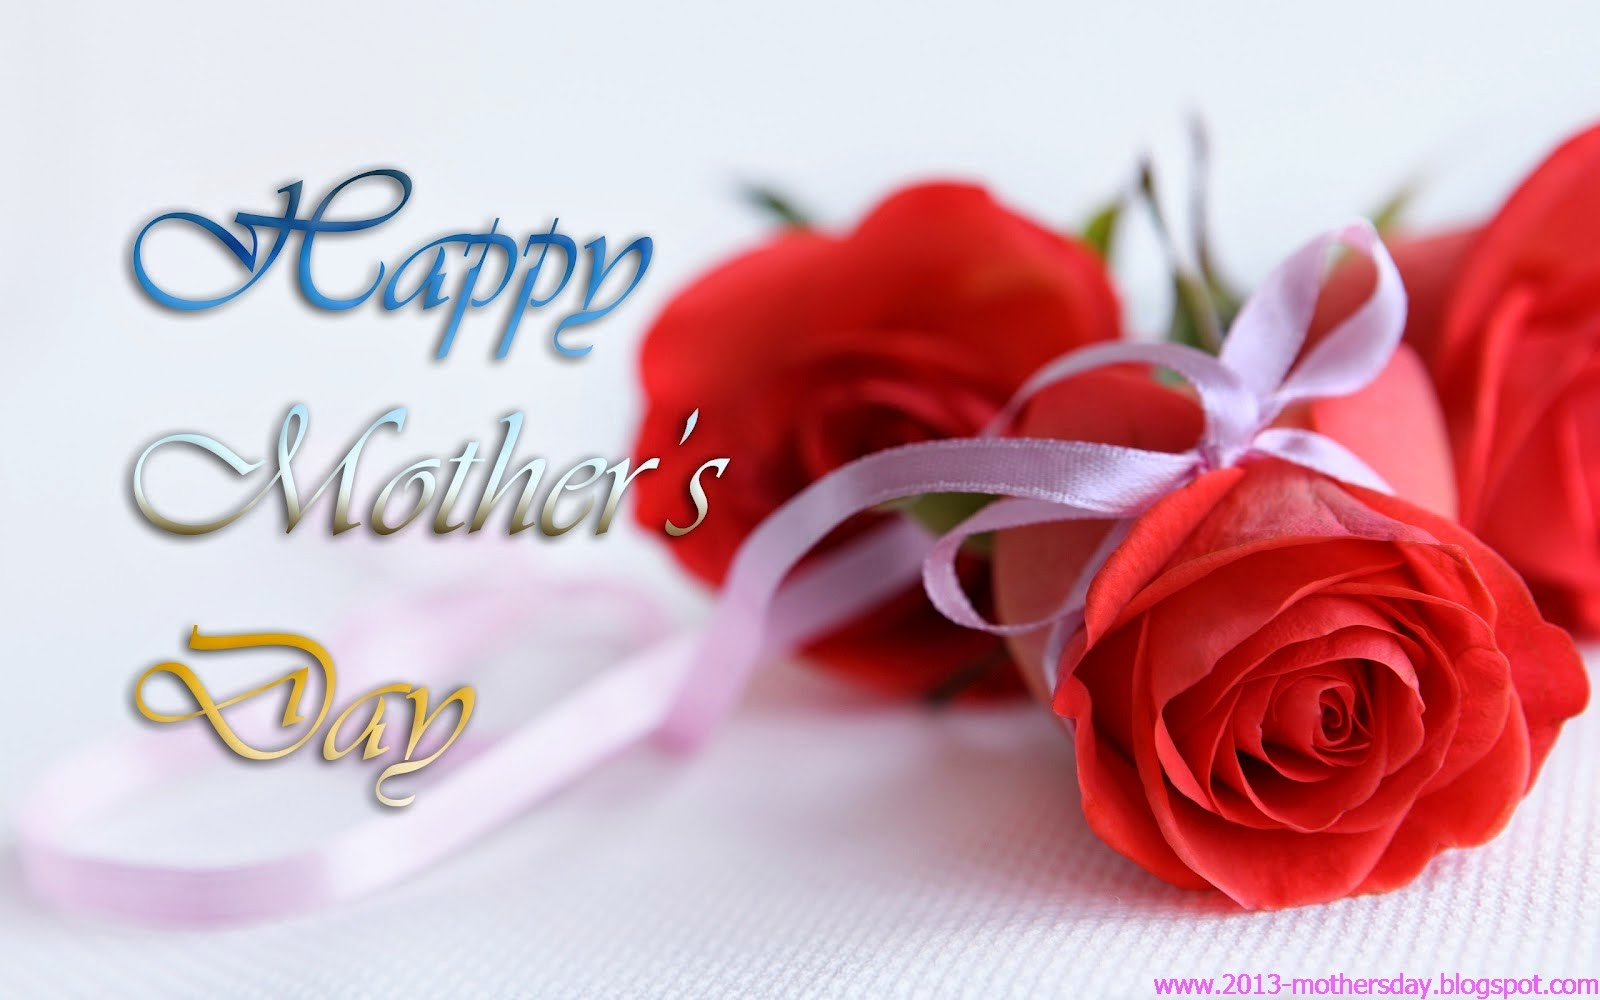 Happy Mothers Day Flowers Images 2016 | Happy Mother's Day 2016